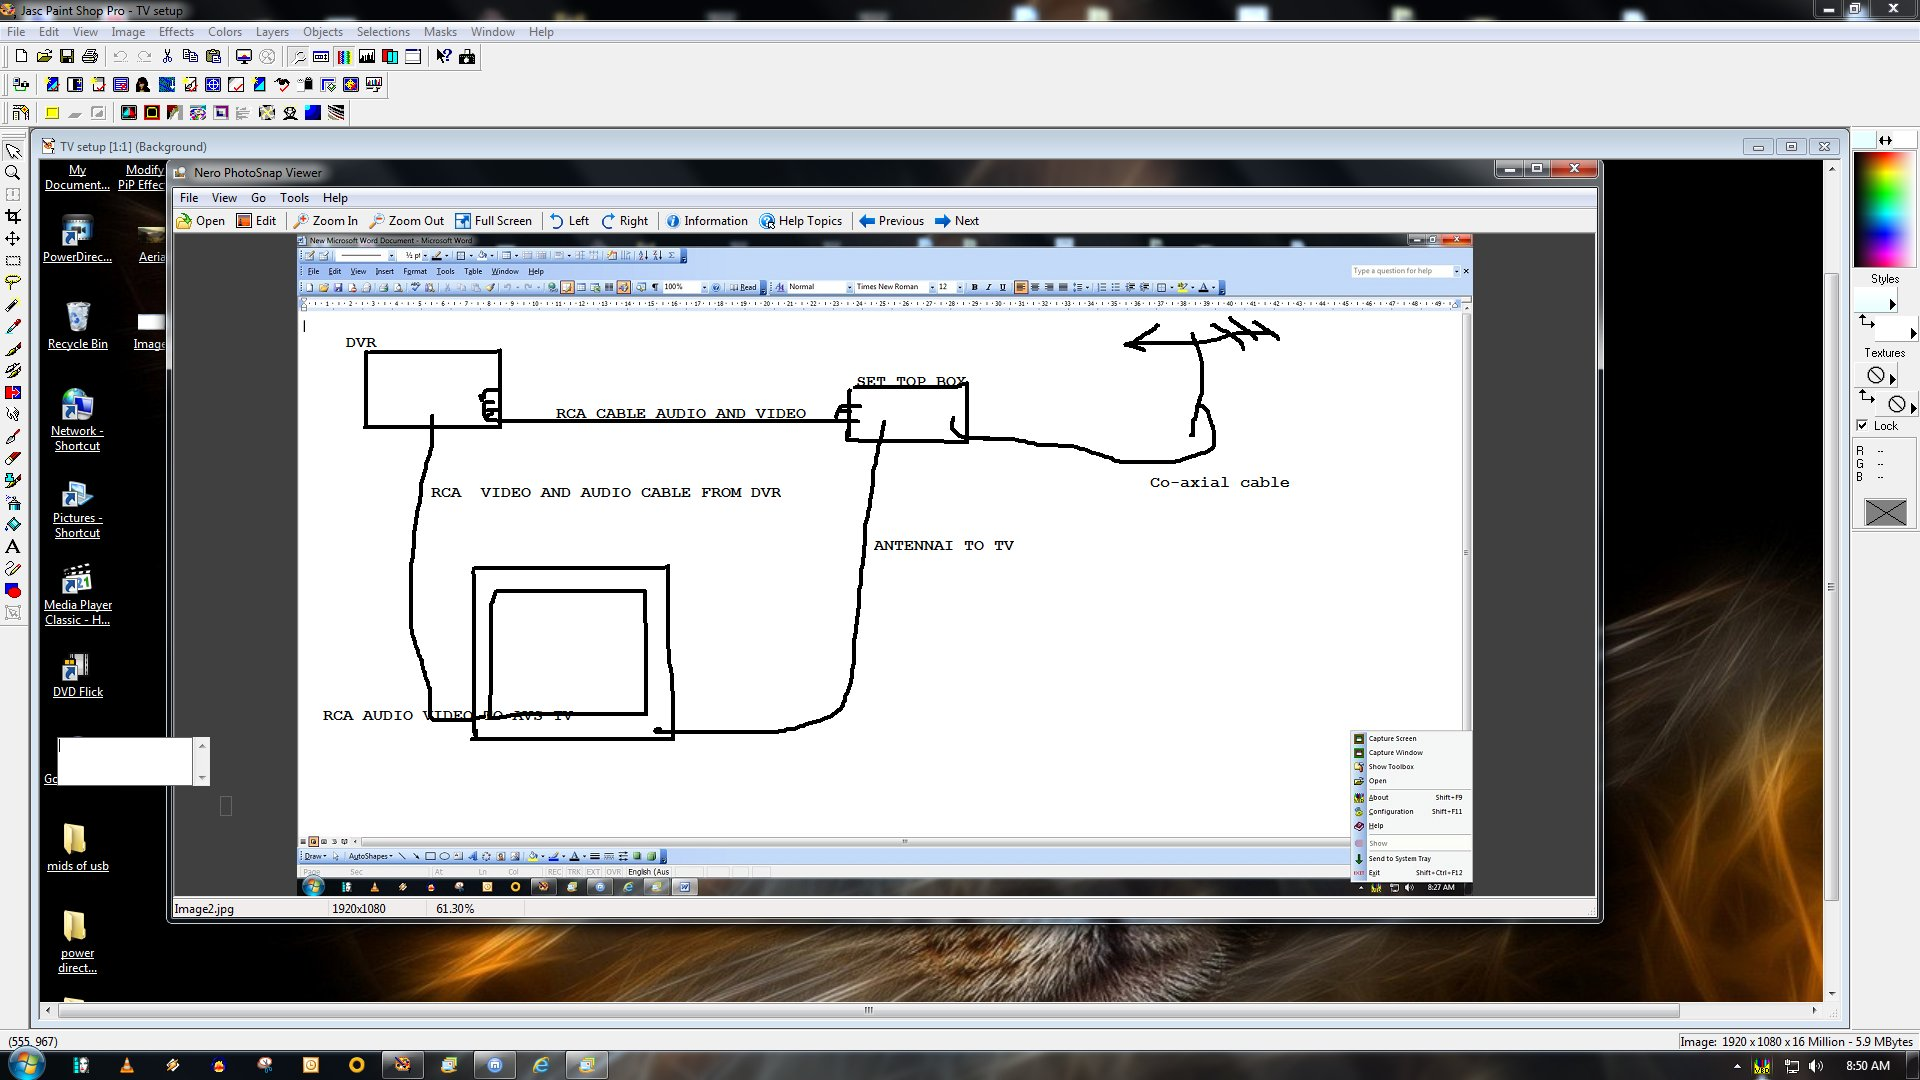 Maxent Plasma Monitor Mx 42vm11 Diagram And W Tracking The Signal Go To Www Retrevo Com Thankyou Asta My Description Ie Names For Cables May Not Be 100 Accurate I Dont Have Any Drawing Tools Diagrams So Here Goes